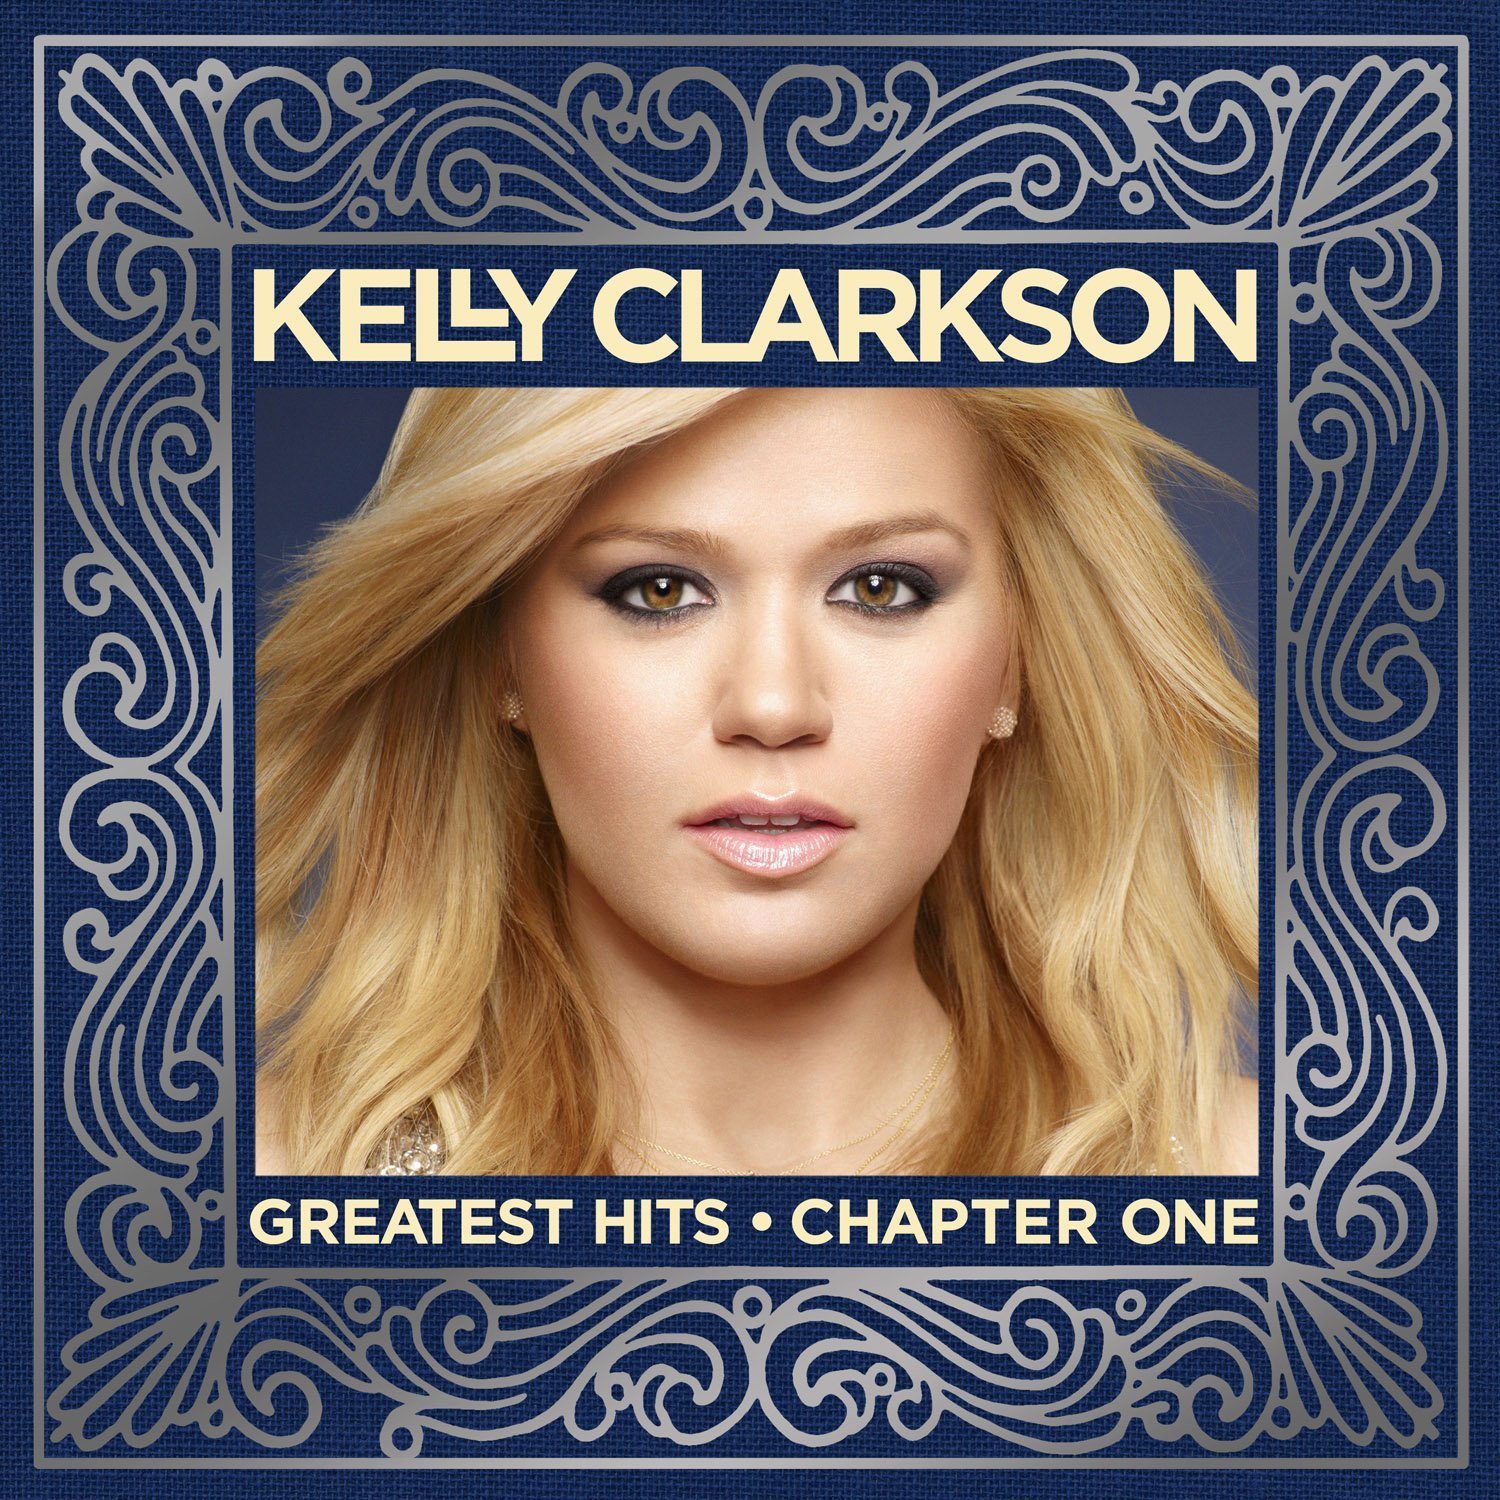 Kelly Clarkson, Greatest Hits: Chapter One